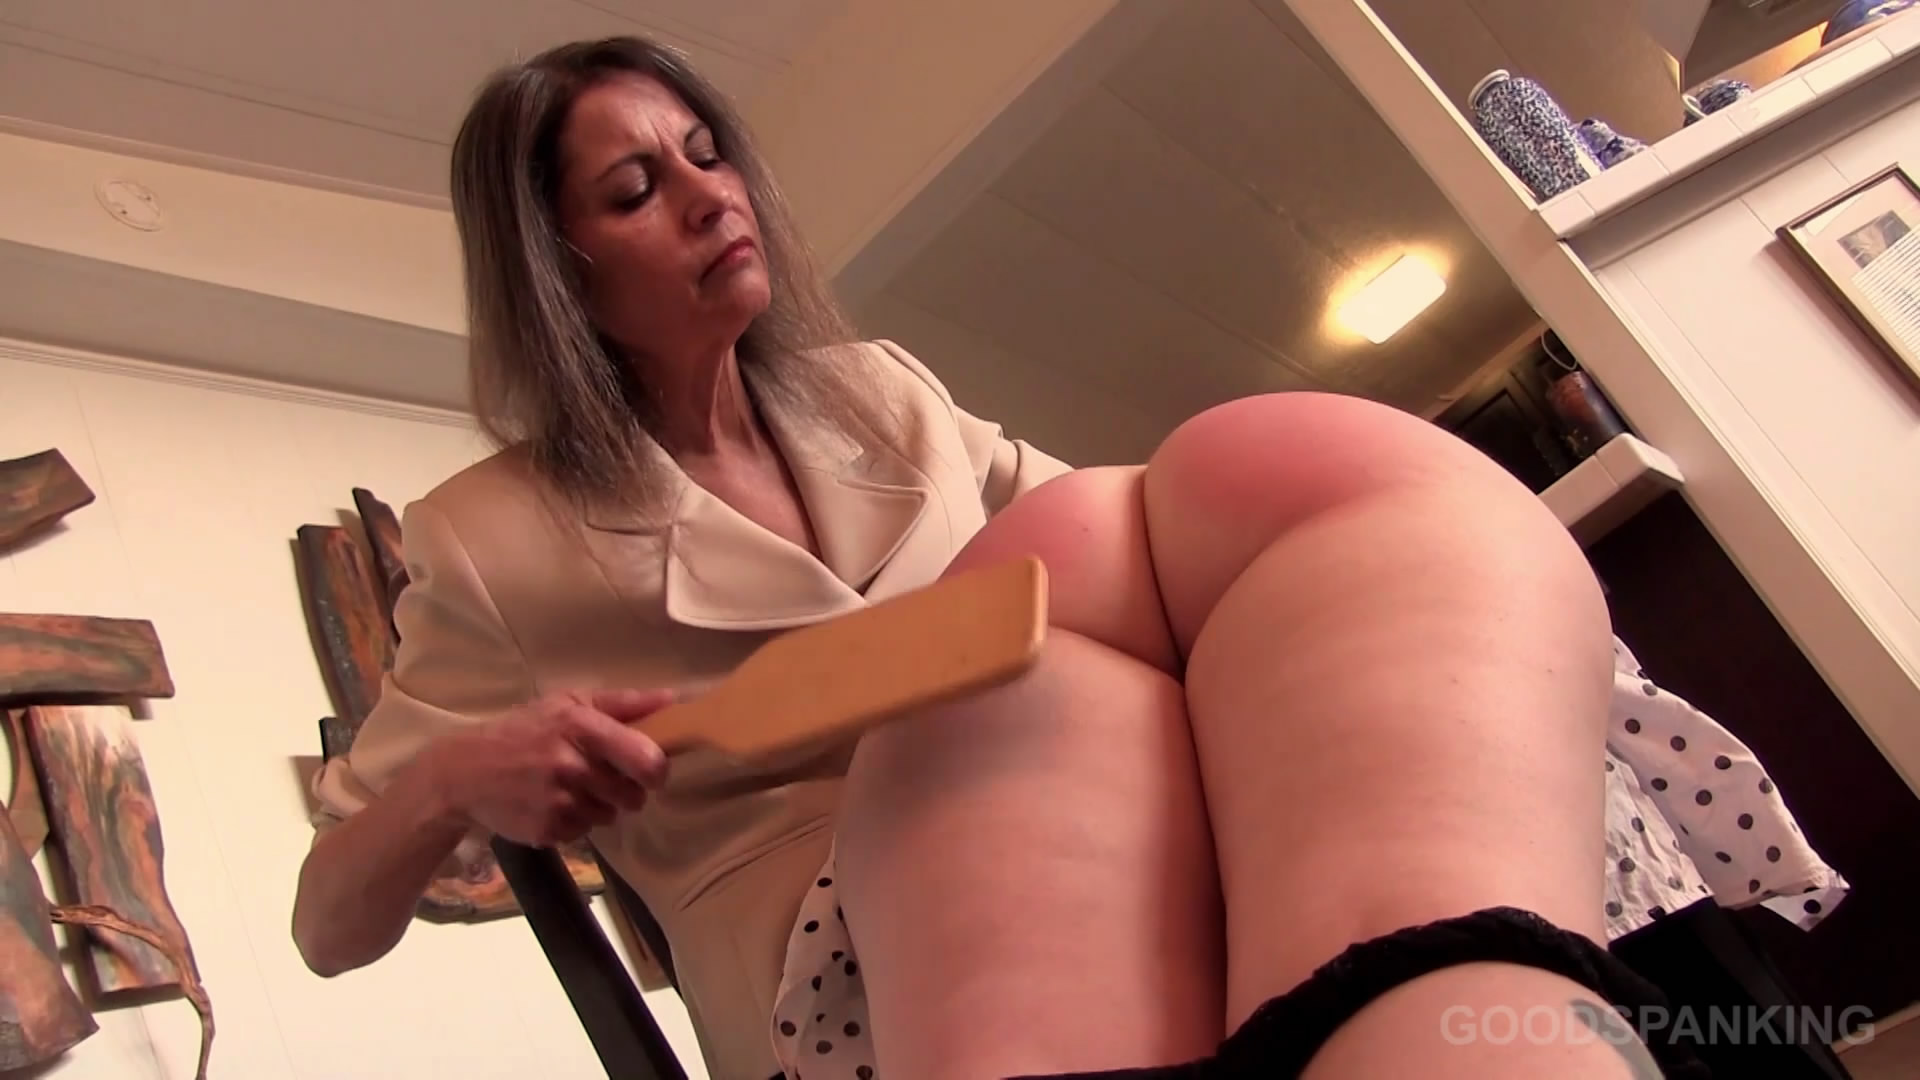 Good Spanking – MP4/Full HD – CHELSEA PFEIFFER,GINGER SPARKS – PUT TO THE TEST | NOV. 29, 19